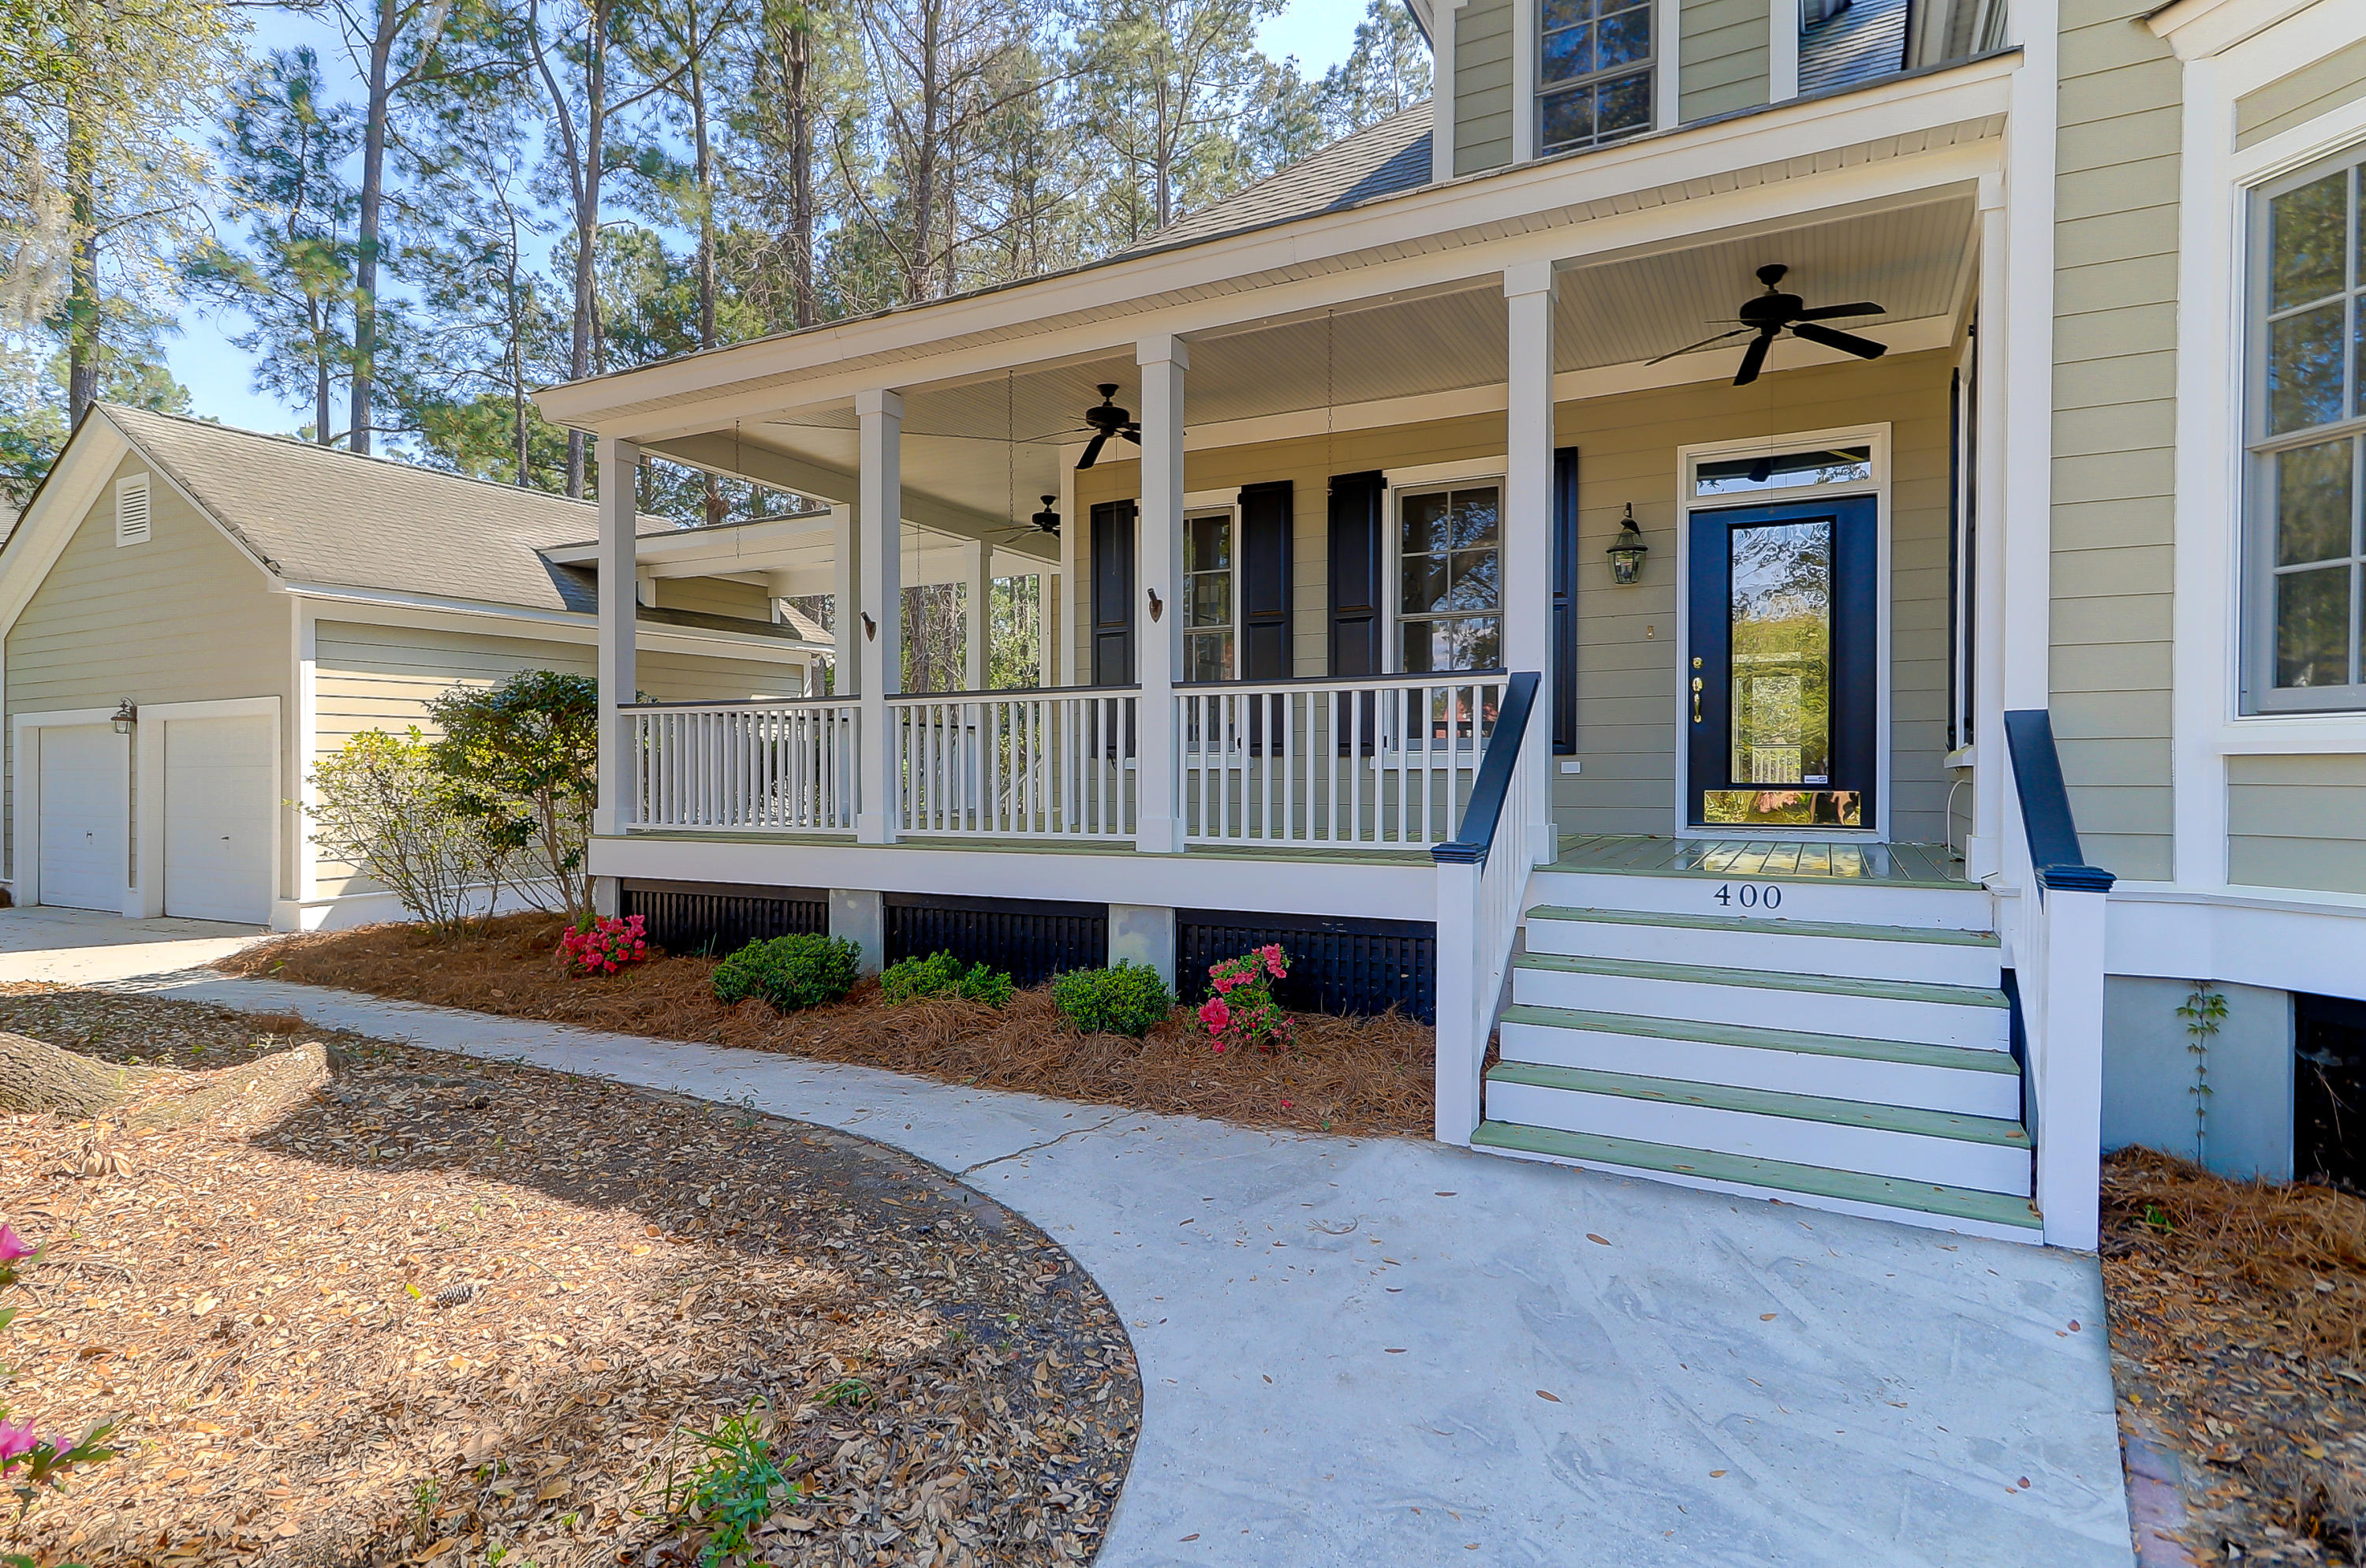 Grassy Creek Homes For Sale - 400 Tidal Reef, Mount Pleasant, SC - 5